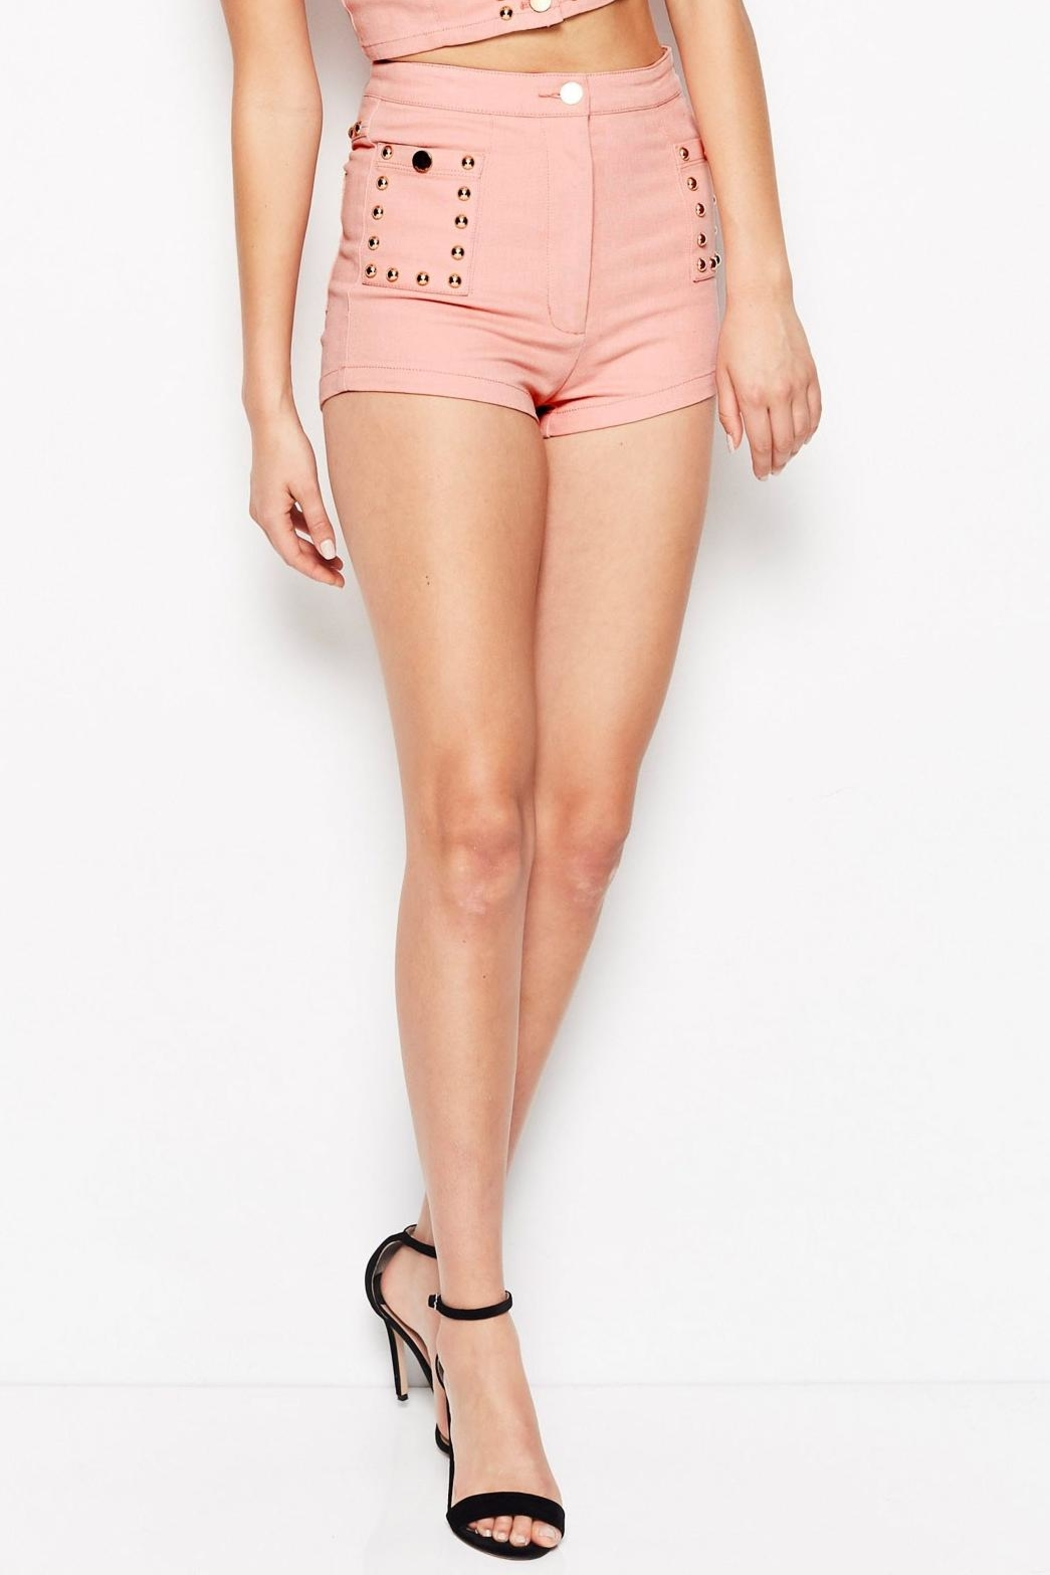 Alice McCall  Lonely Hearts Shorts - Main Image